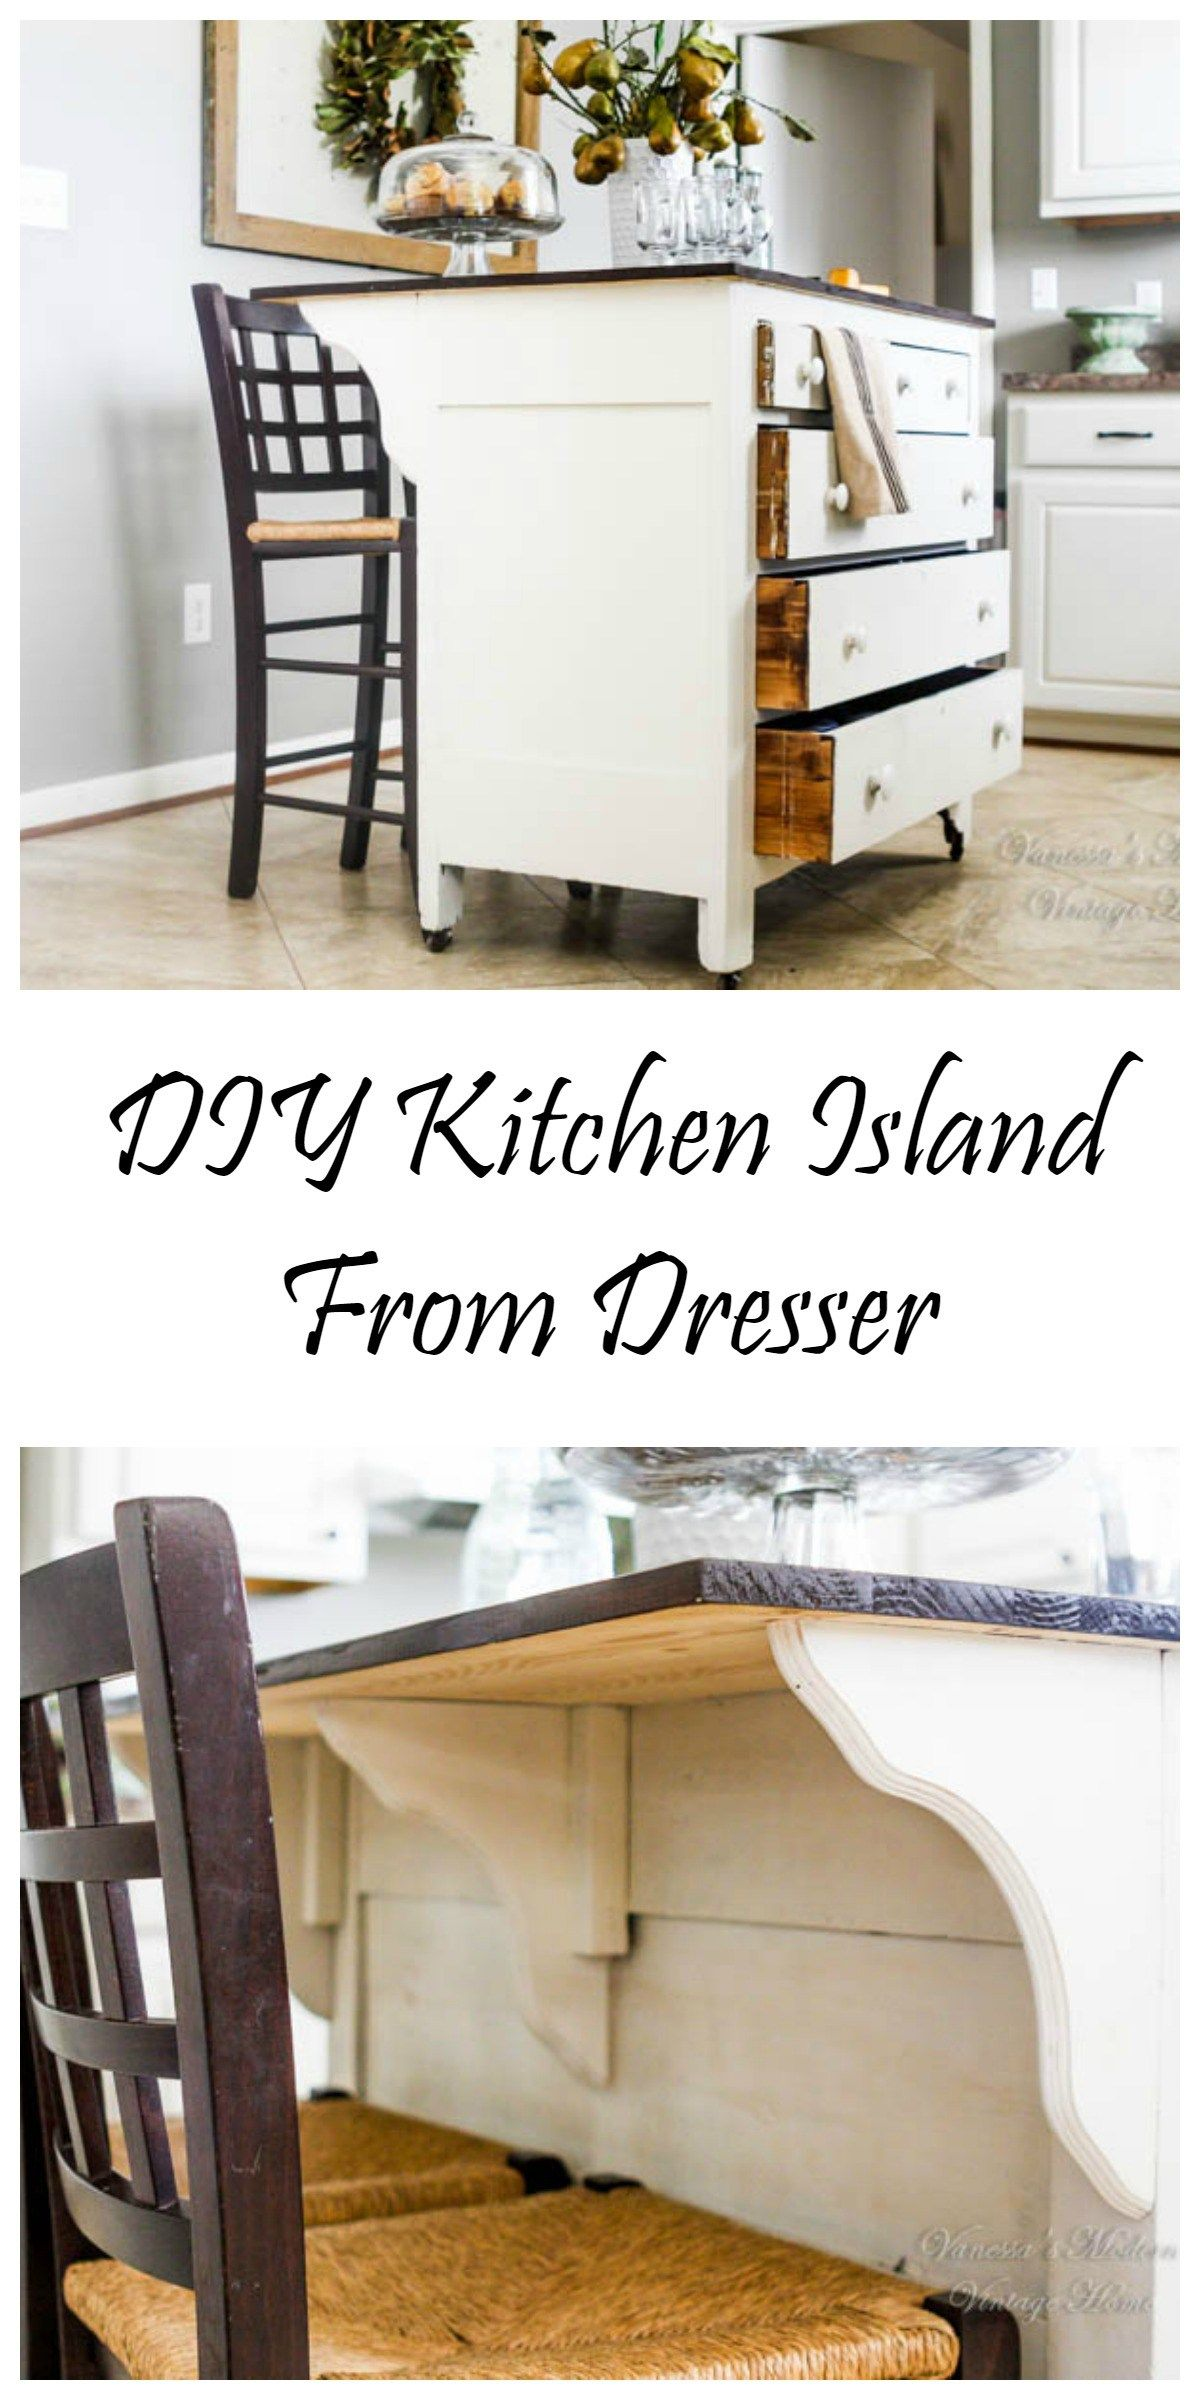 Need Kitchen Storage? Make a kitchen Island from a dresser | Remodel ...